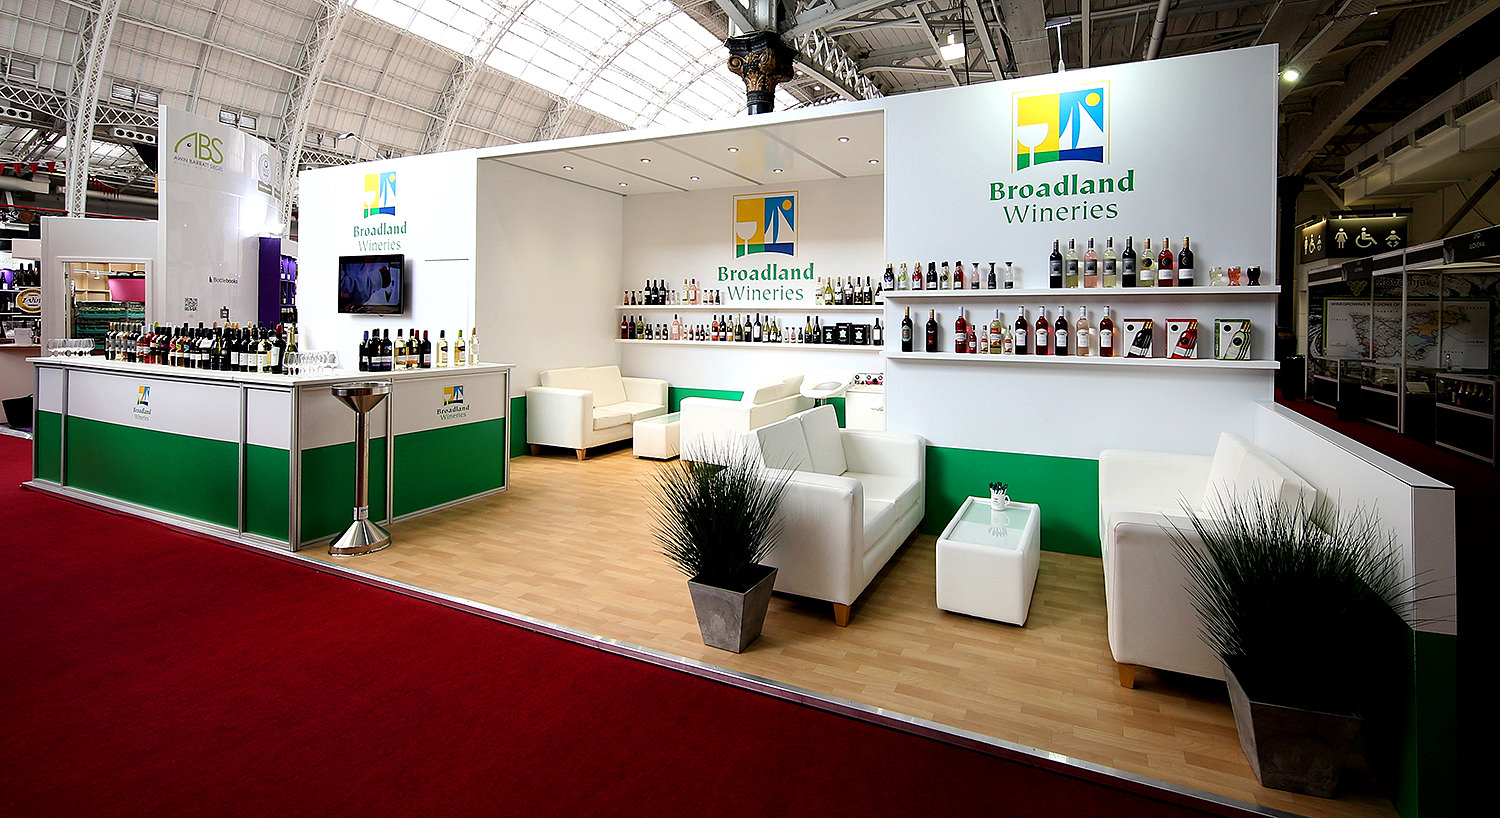 What Does Expo Stands For : Ggs do it again exhibition stand for broadland wineries